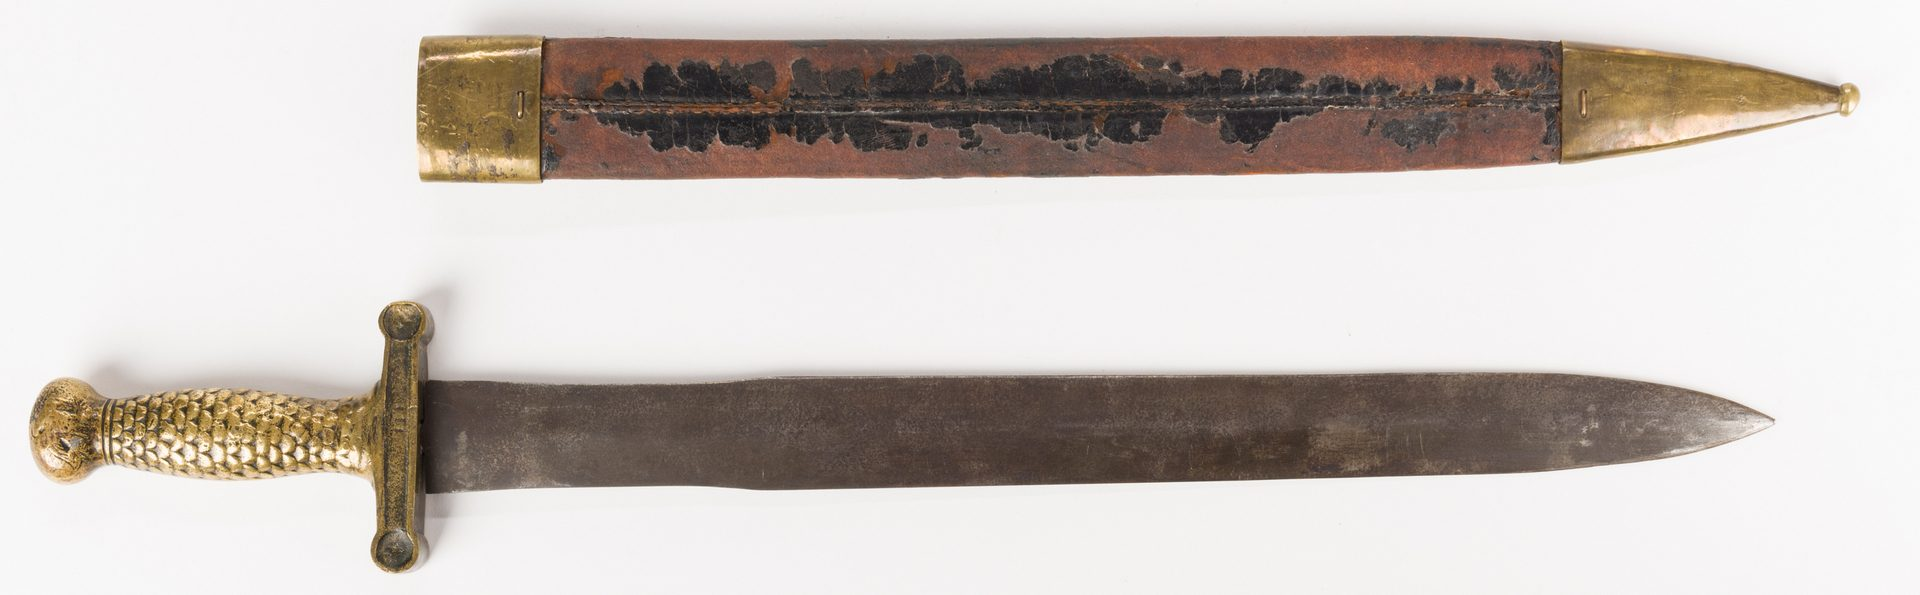 Lot 500: Artillery Short Sword & Scabbard, Poss. Confederate